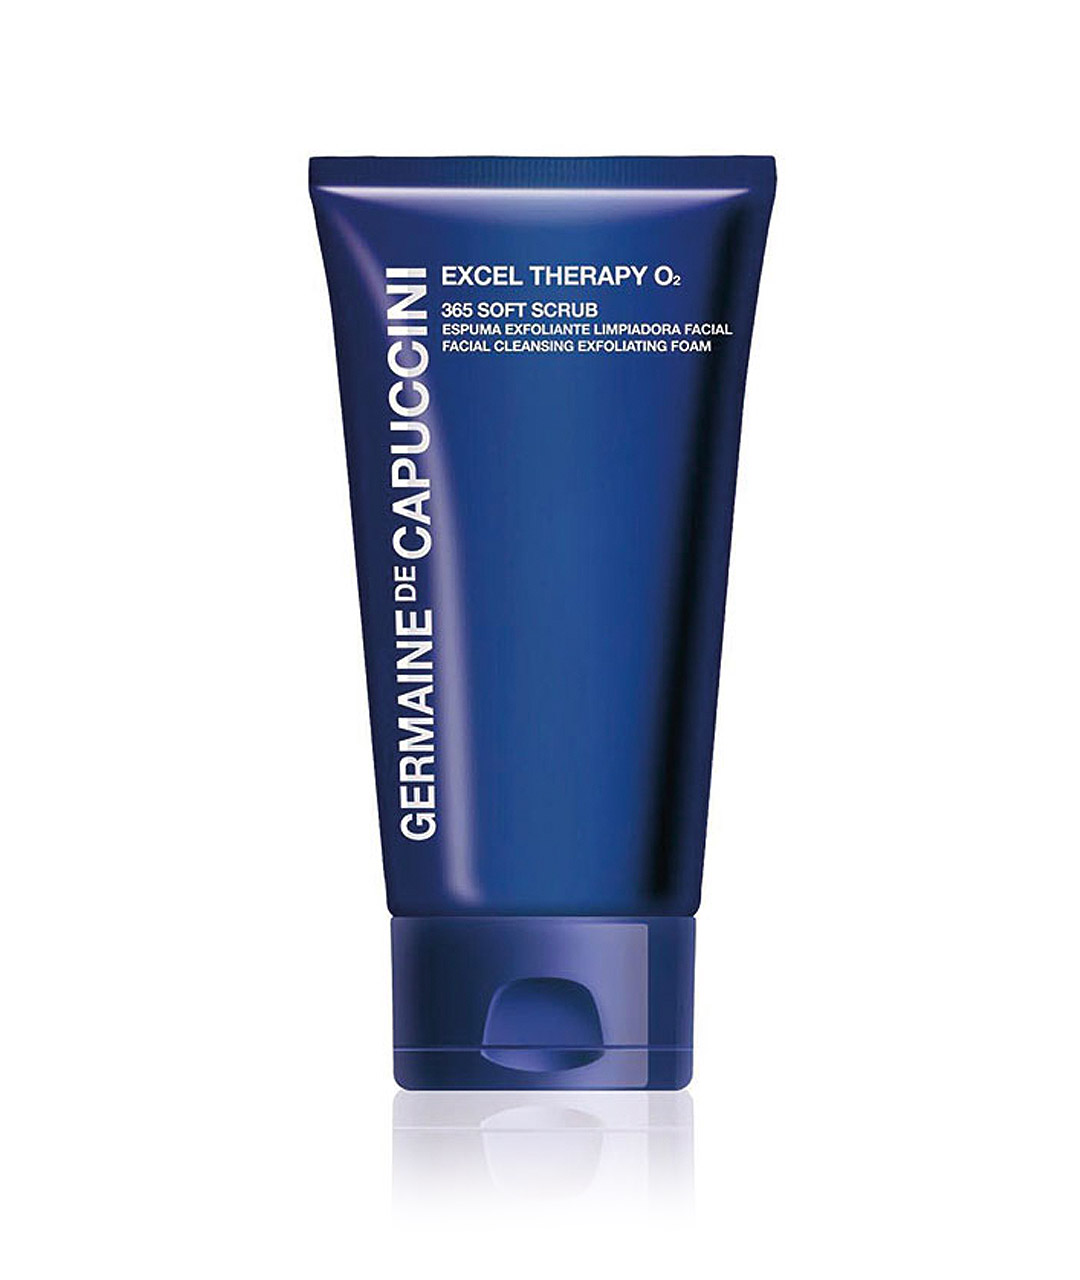 Excel Therapy 365 Soft Scrub